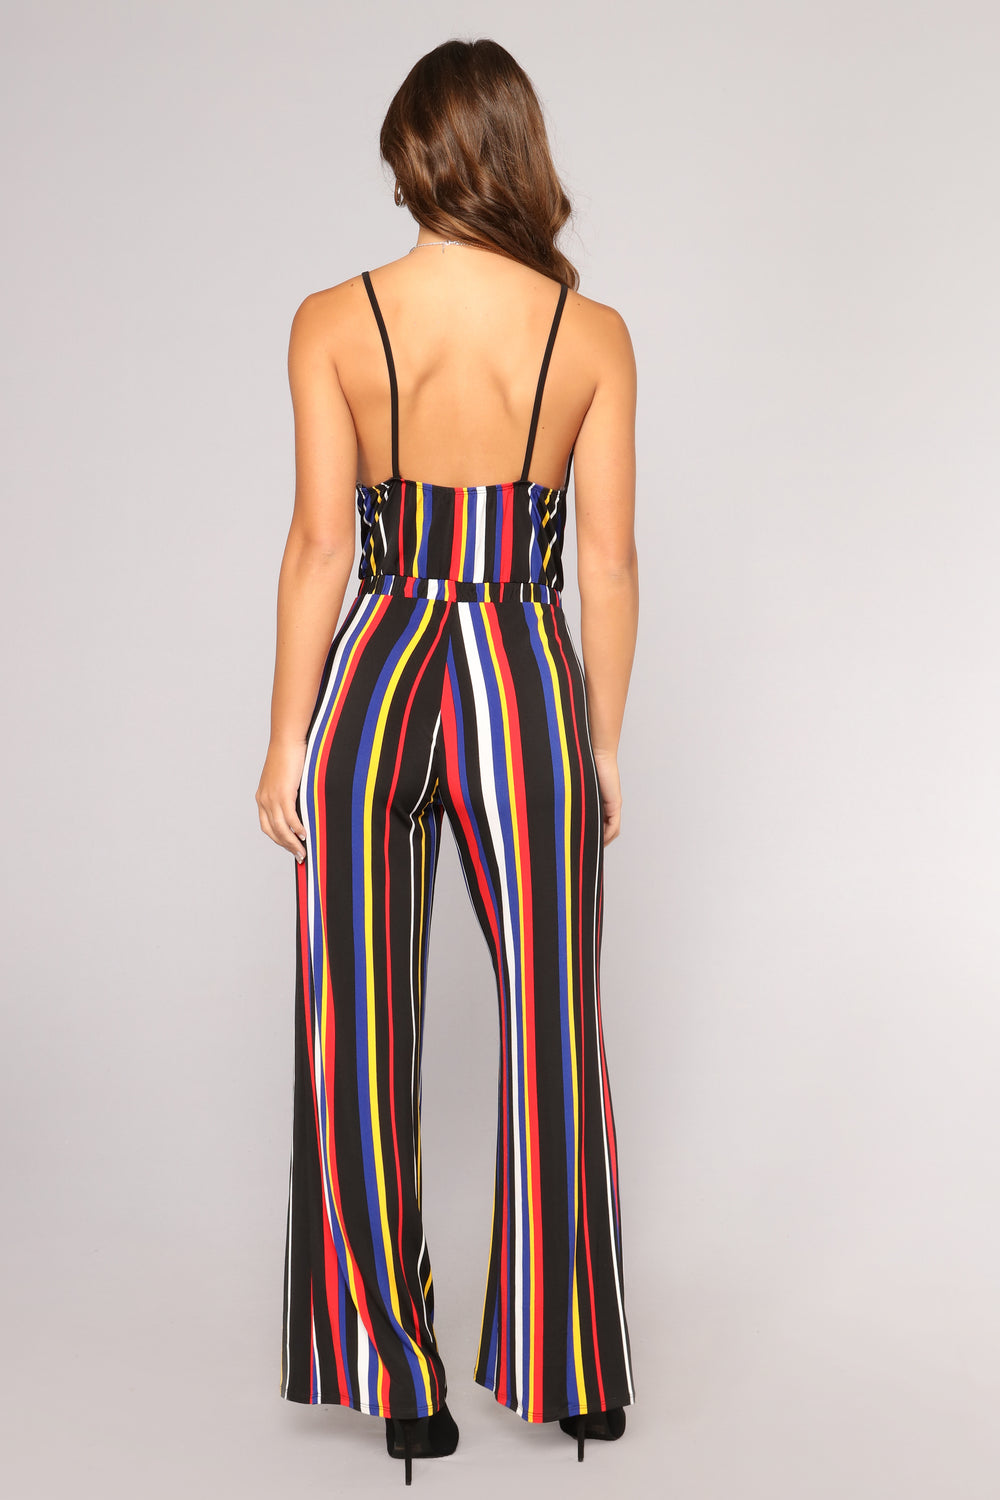 Stick To Your Day Job Stripe Jumpsuit - Red/Multi